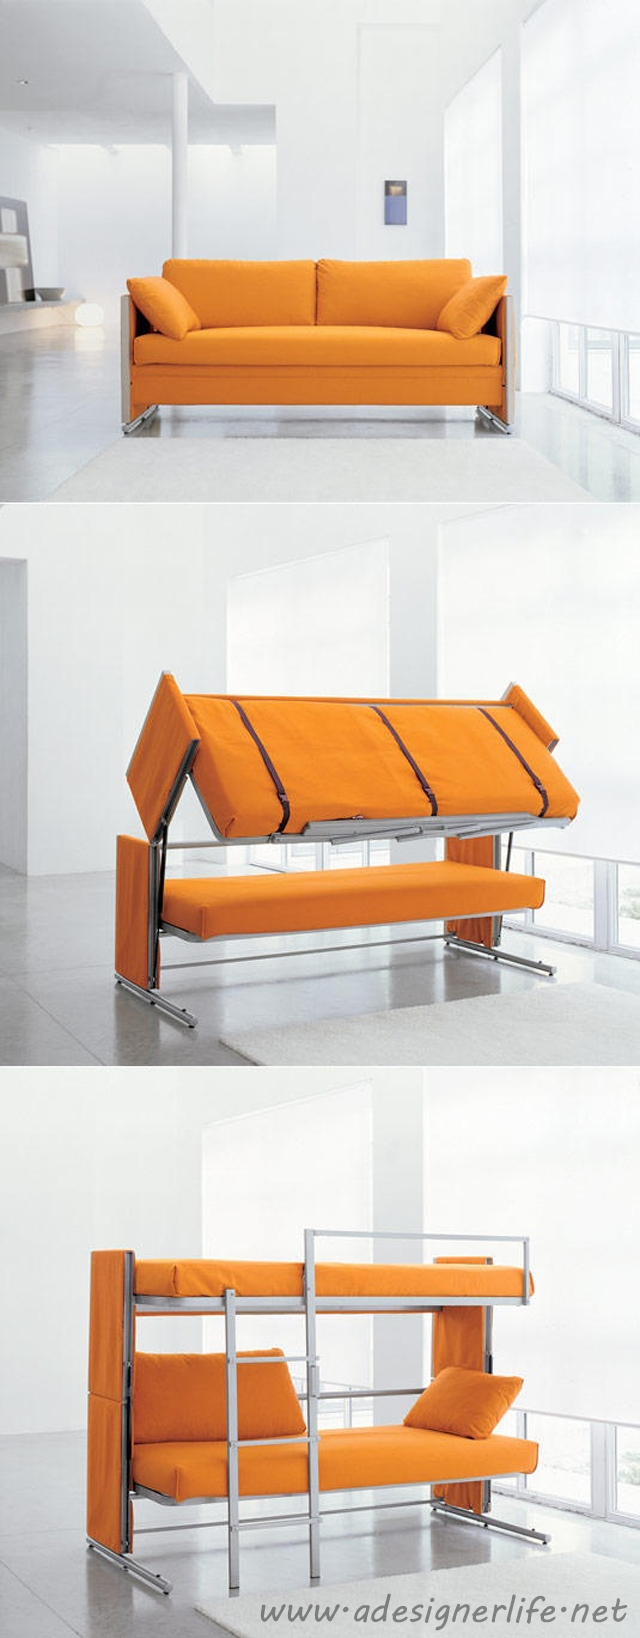 Resource Furniture Convertible Sofa To Bunk Bed   AWESOME! #product_design